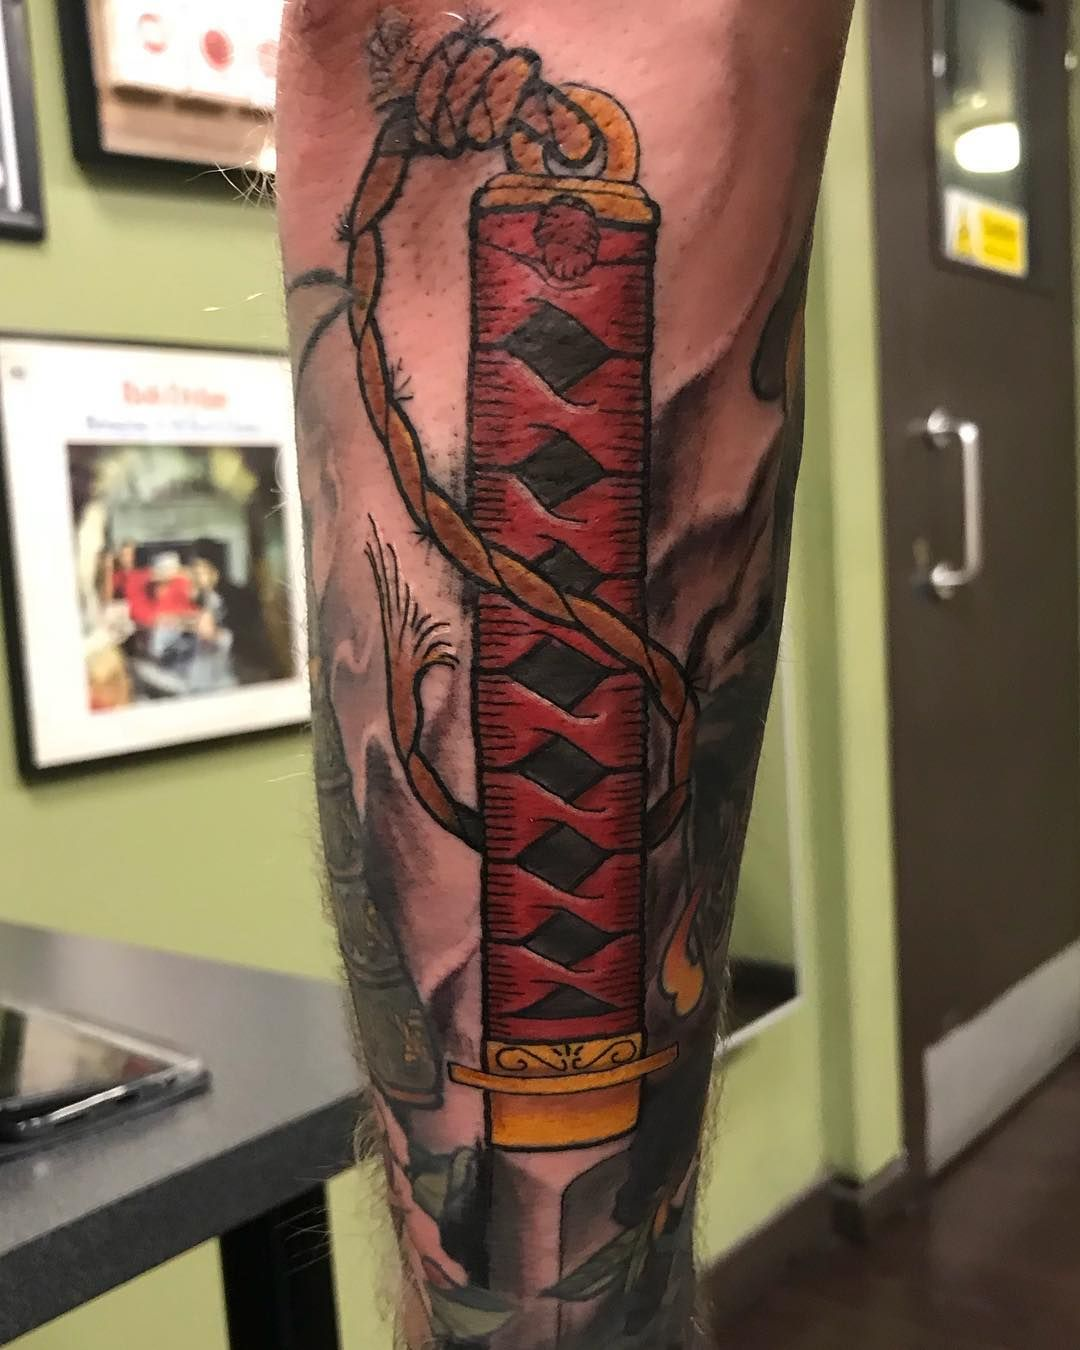 Katana Handle Gap Filler For Garymcnaughton Cheers For Getting It Dude Done Today At Fmtglasgow Tattoo Tattooslik Gap Filler Tattoo Katana Japanese Tattoo